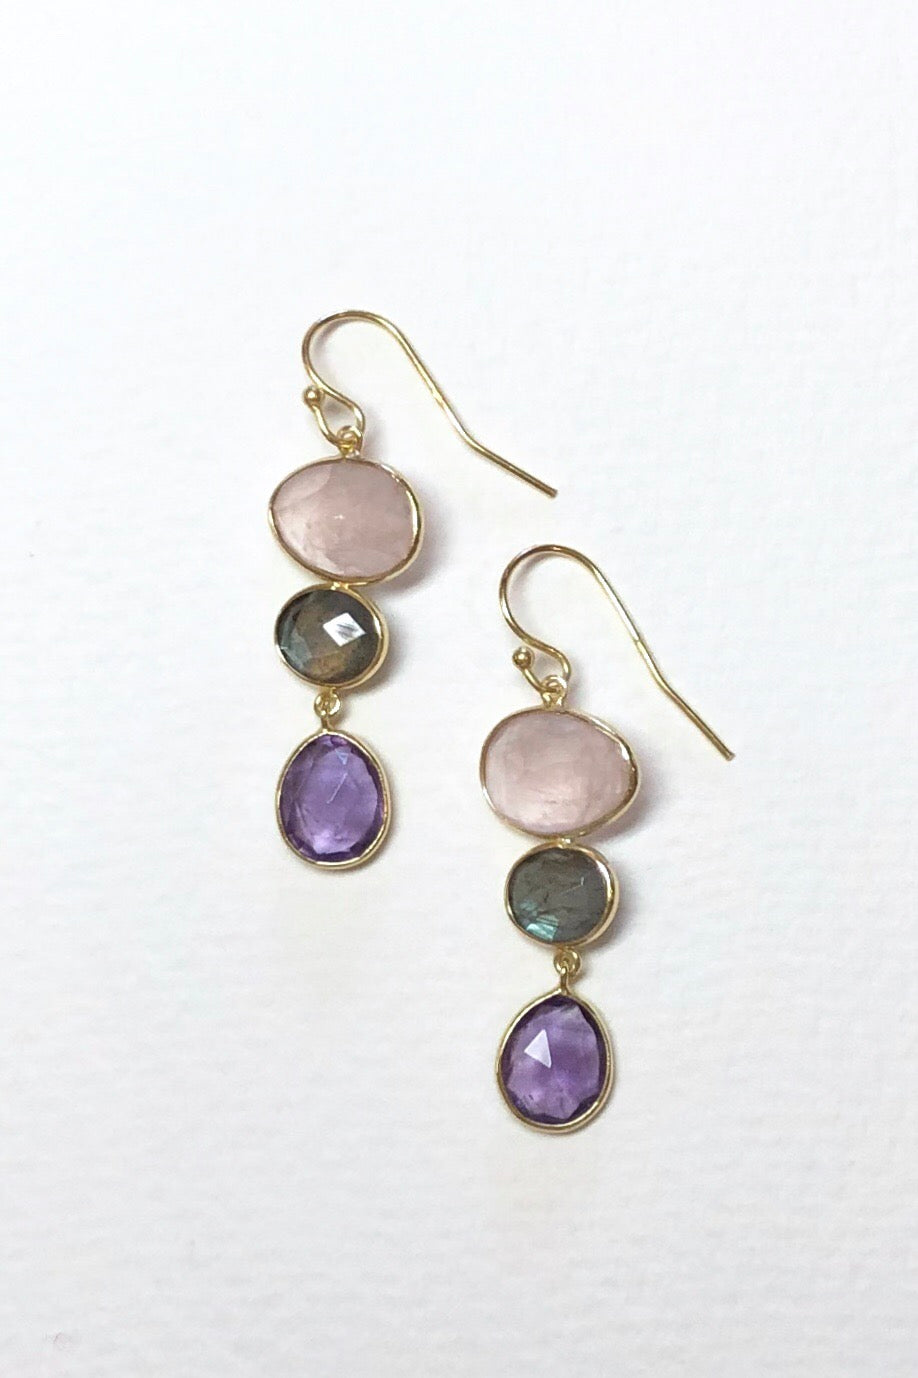 Oracle Earrings Golden Pink Moons sport the best of rose quartz, amethyst and other pink stones